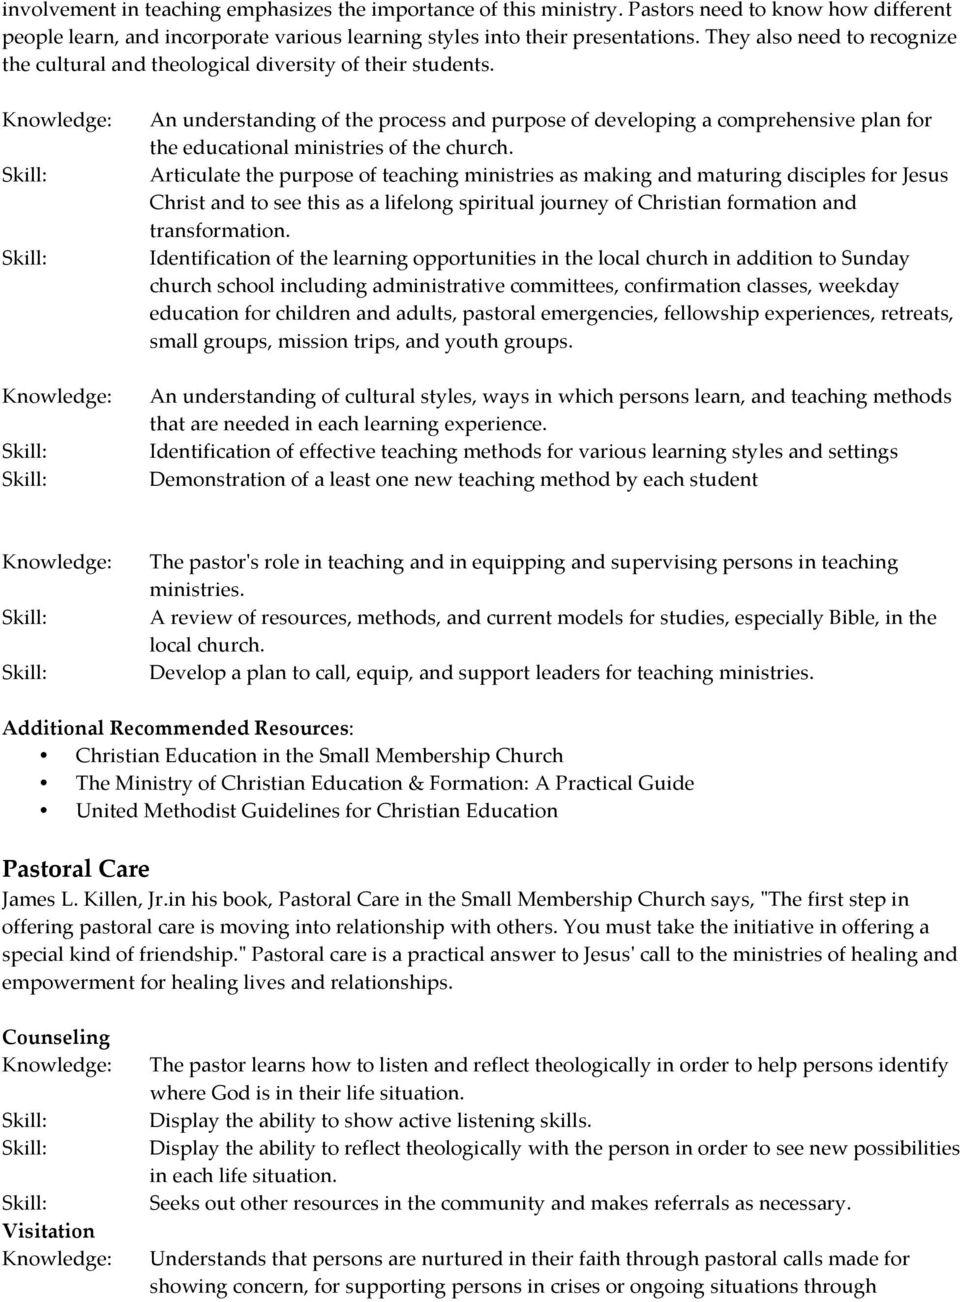 License for Pastoral Ministry Curriculum - PDF